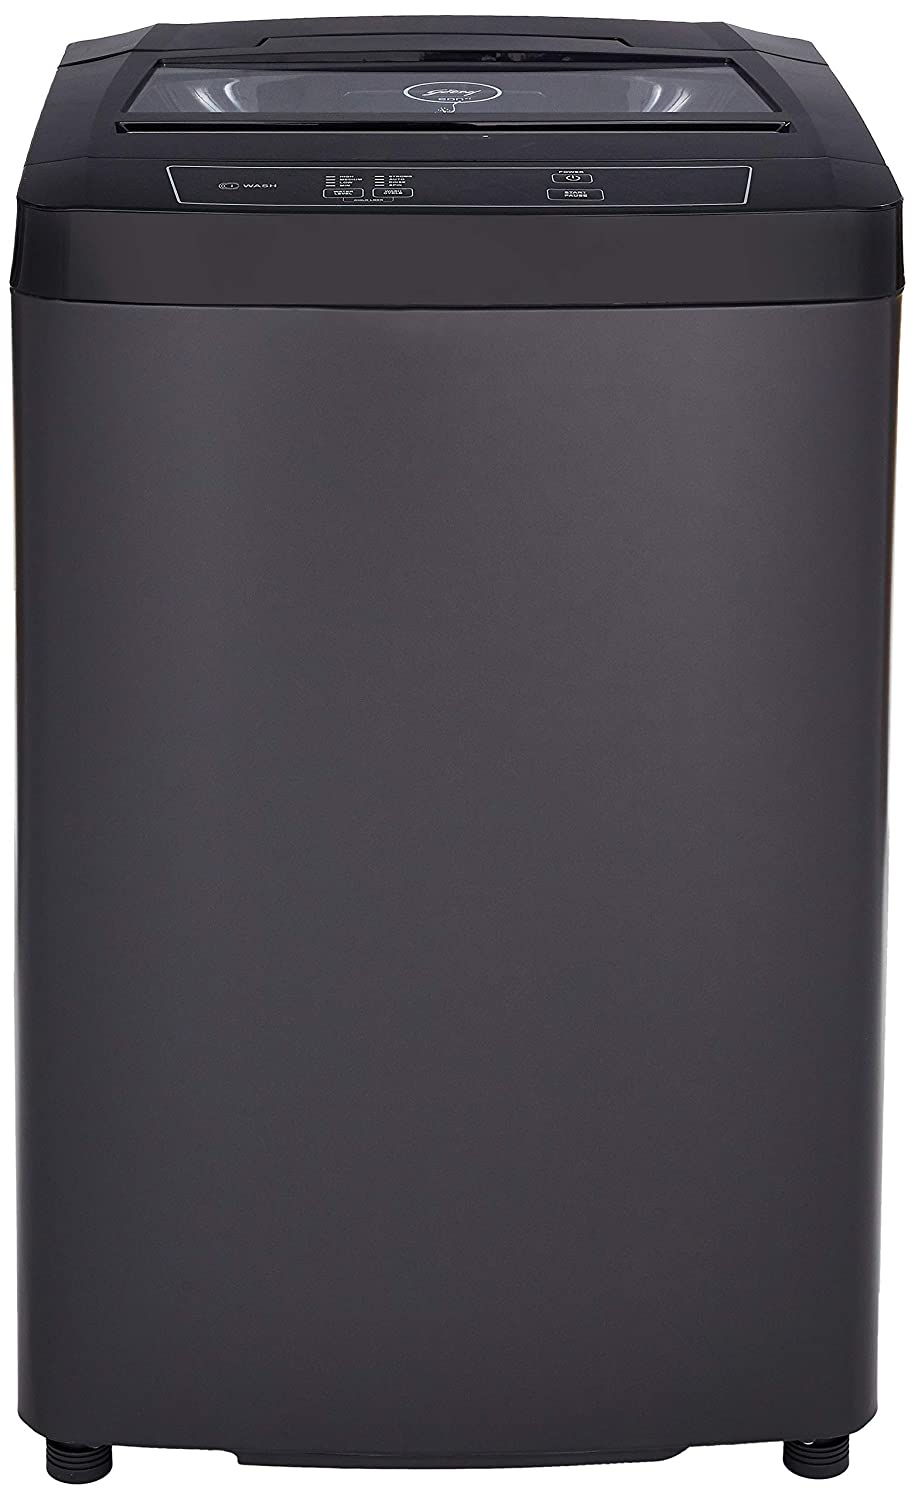 Godrej 7 Kg Fully-Automatic Top Loading Washing Machine (WT EON 700 A Gp Gr, Grey)